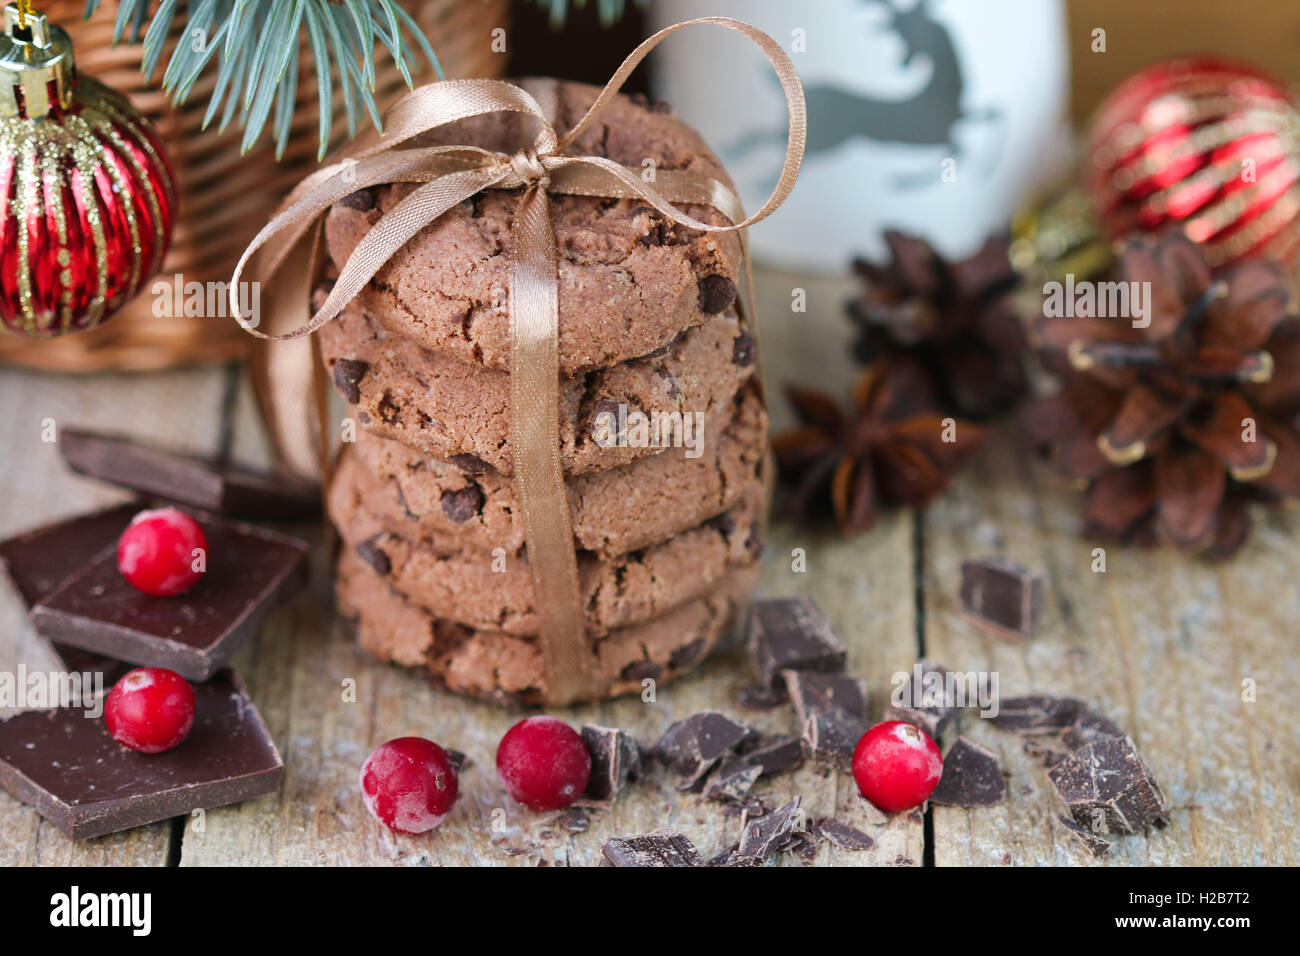 Chocolate chip cookies, cranberry and chocolate. Christmas gifts. Round cookies, tied with ribbon and spruce branch - Stock Image